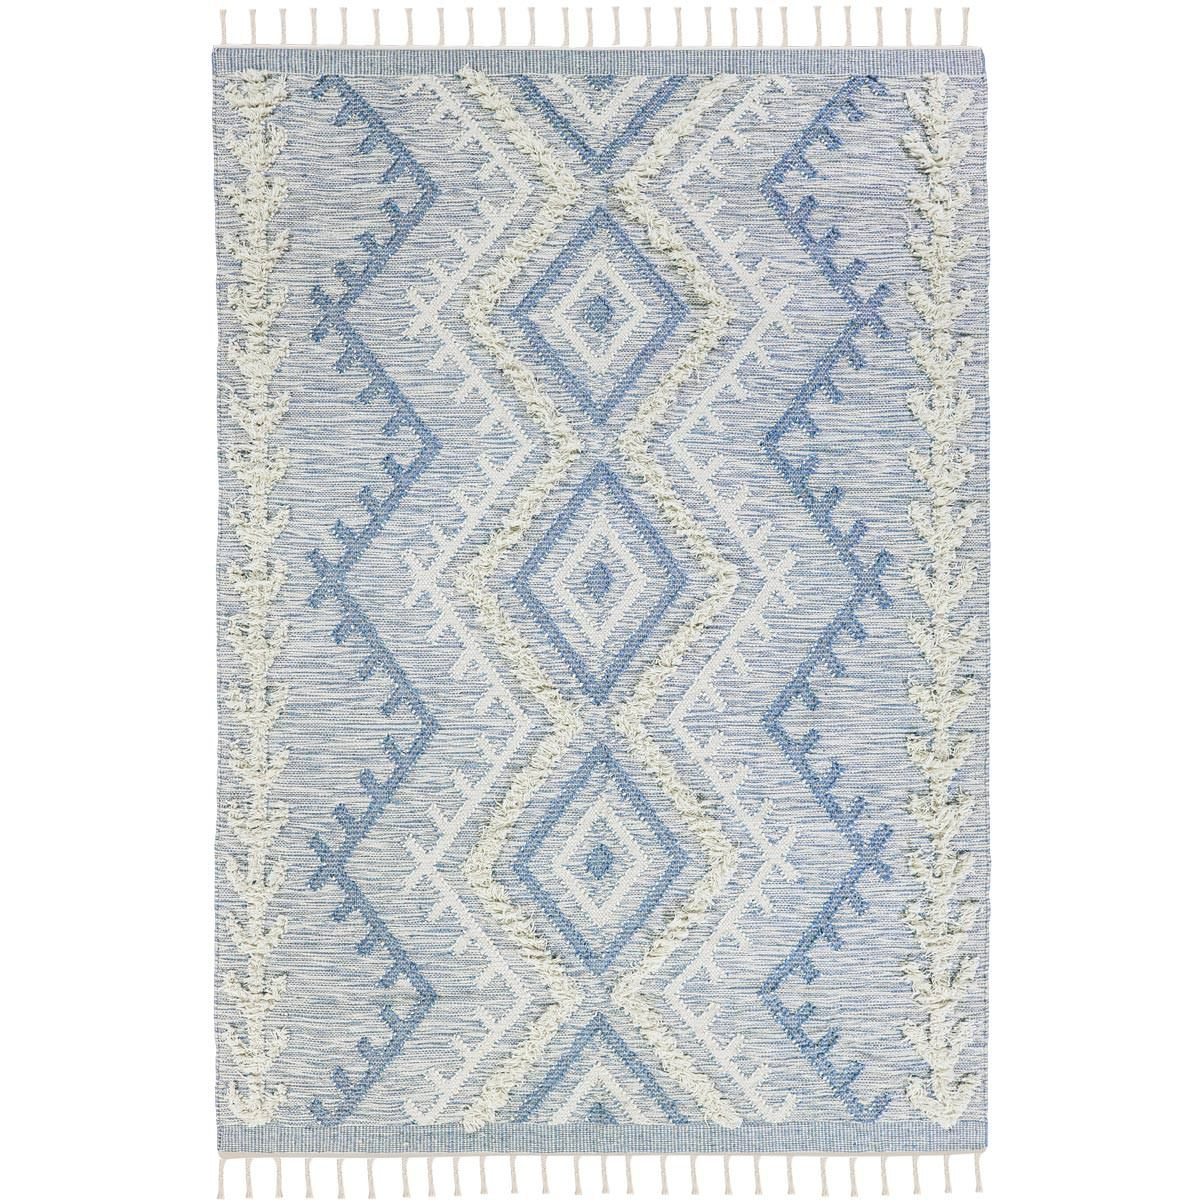 Tangier Rug 05 light blue 1